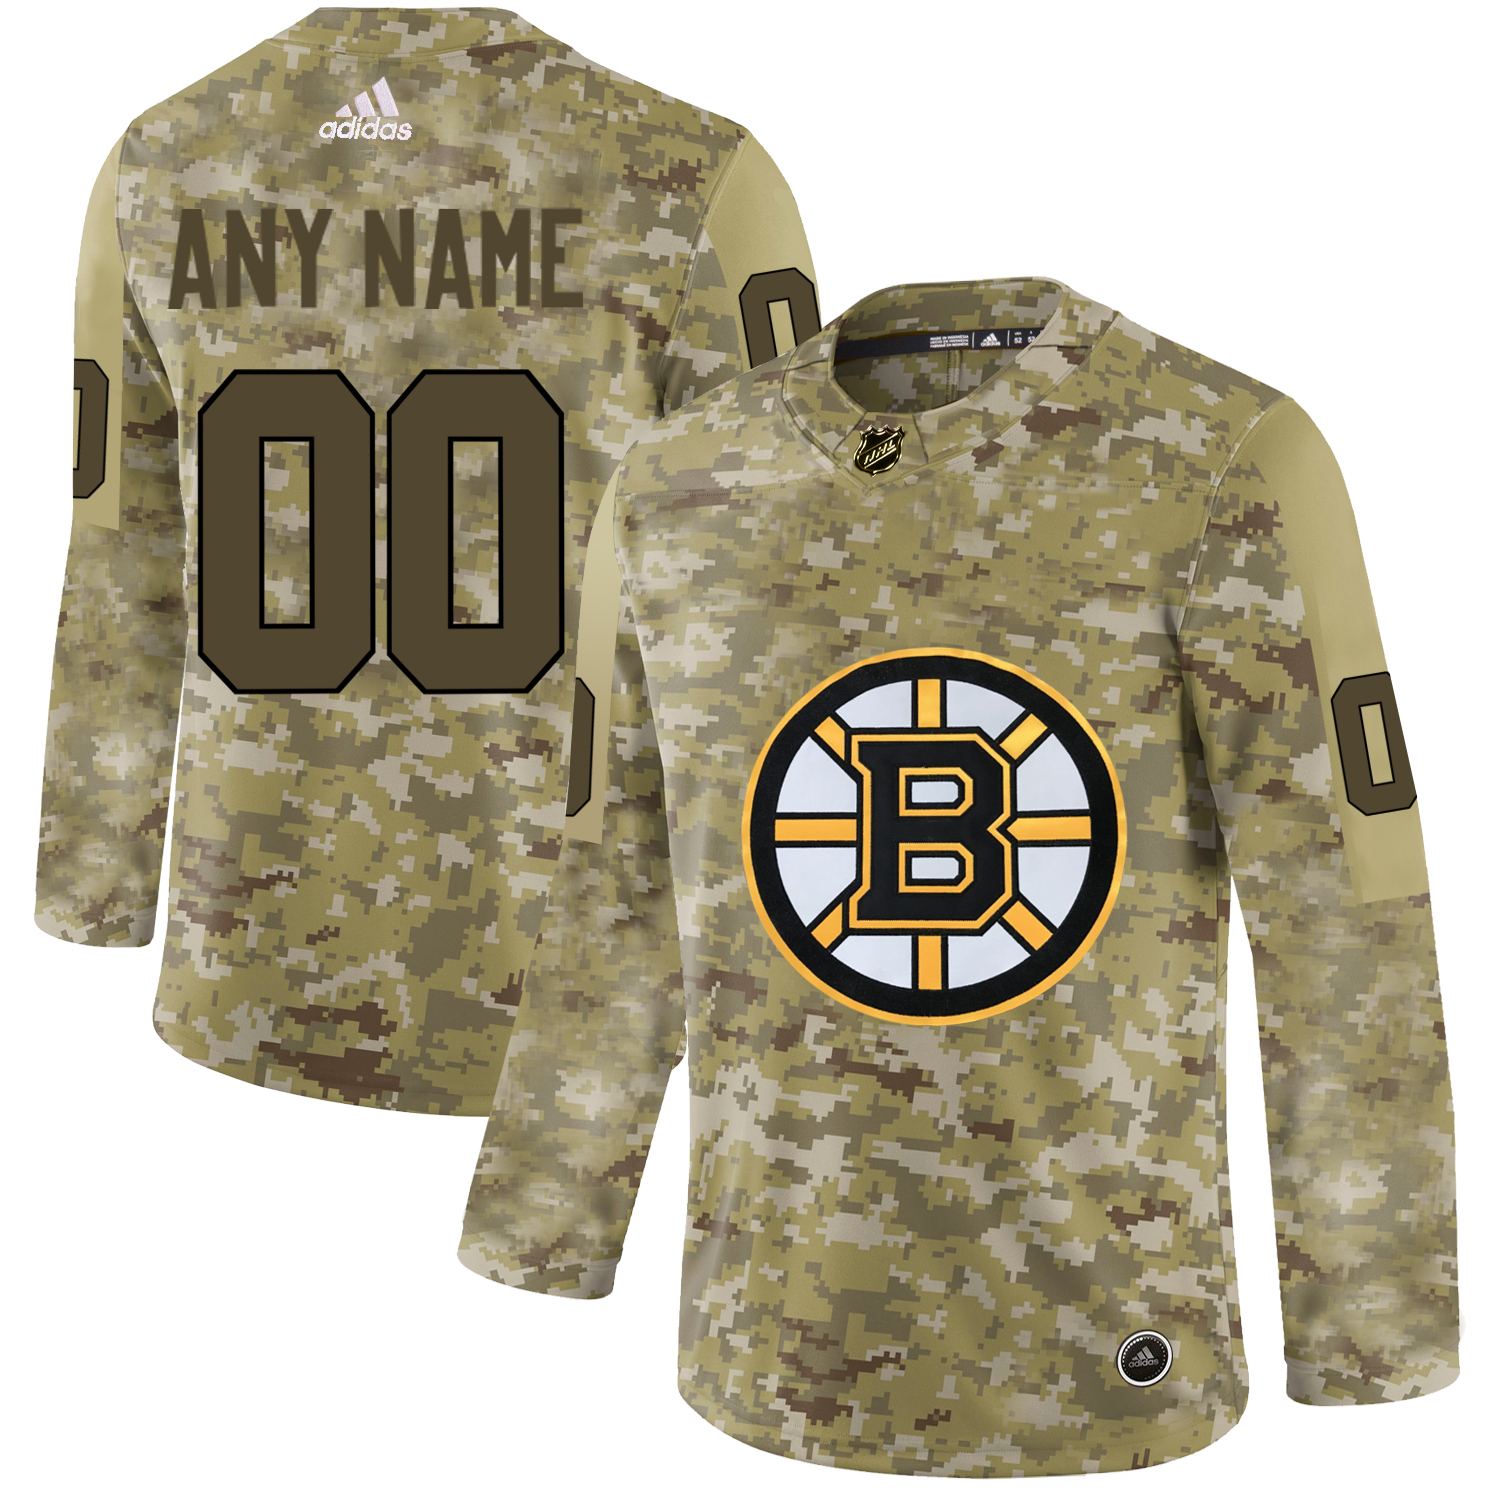 Boston Bruins Camo Men's Customized Adidas Jersey